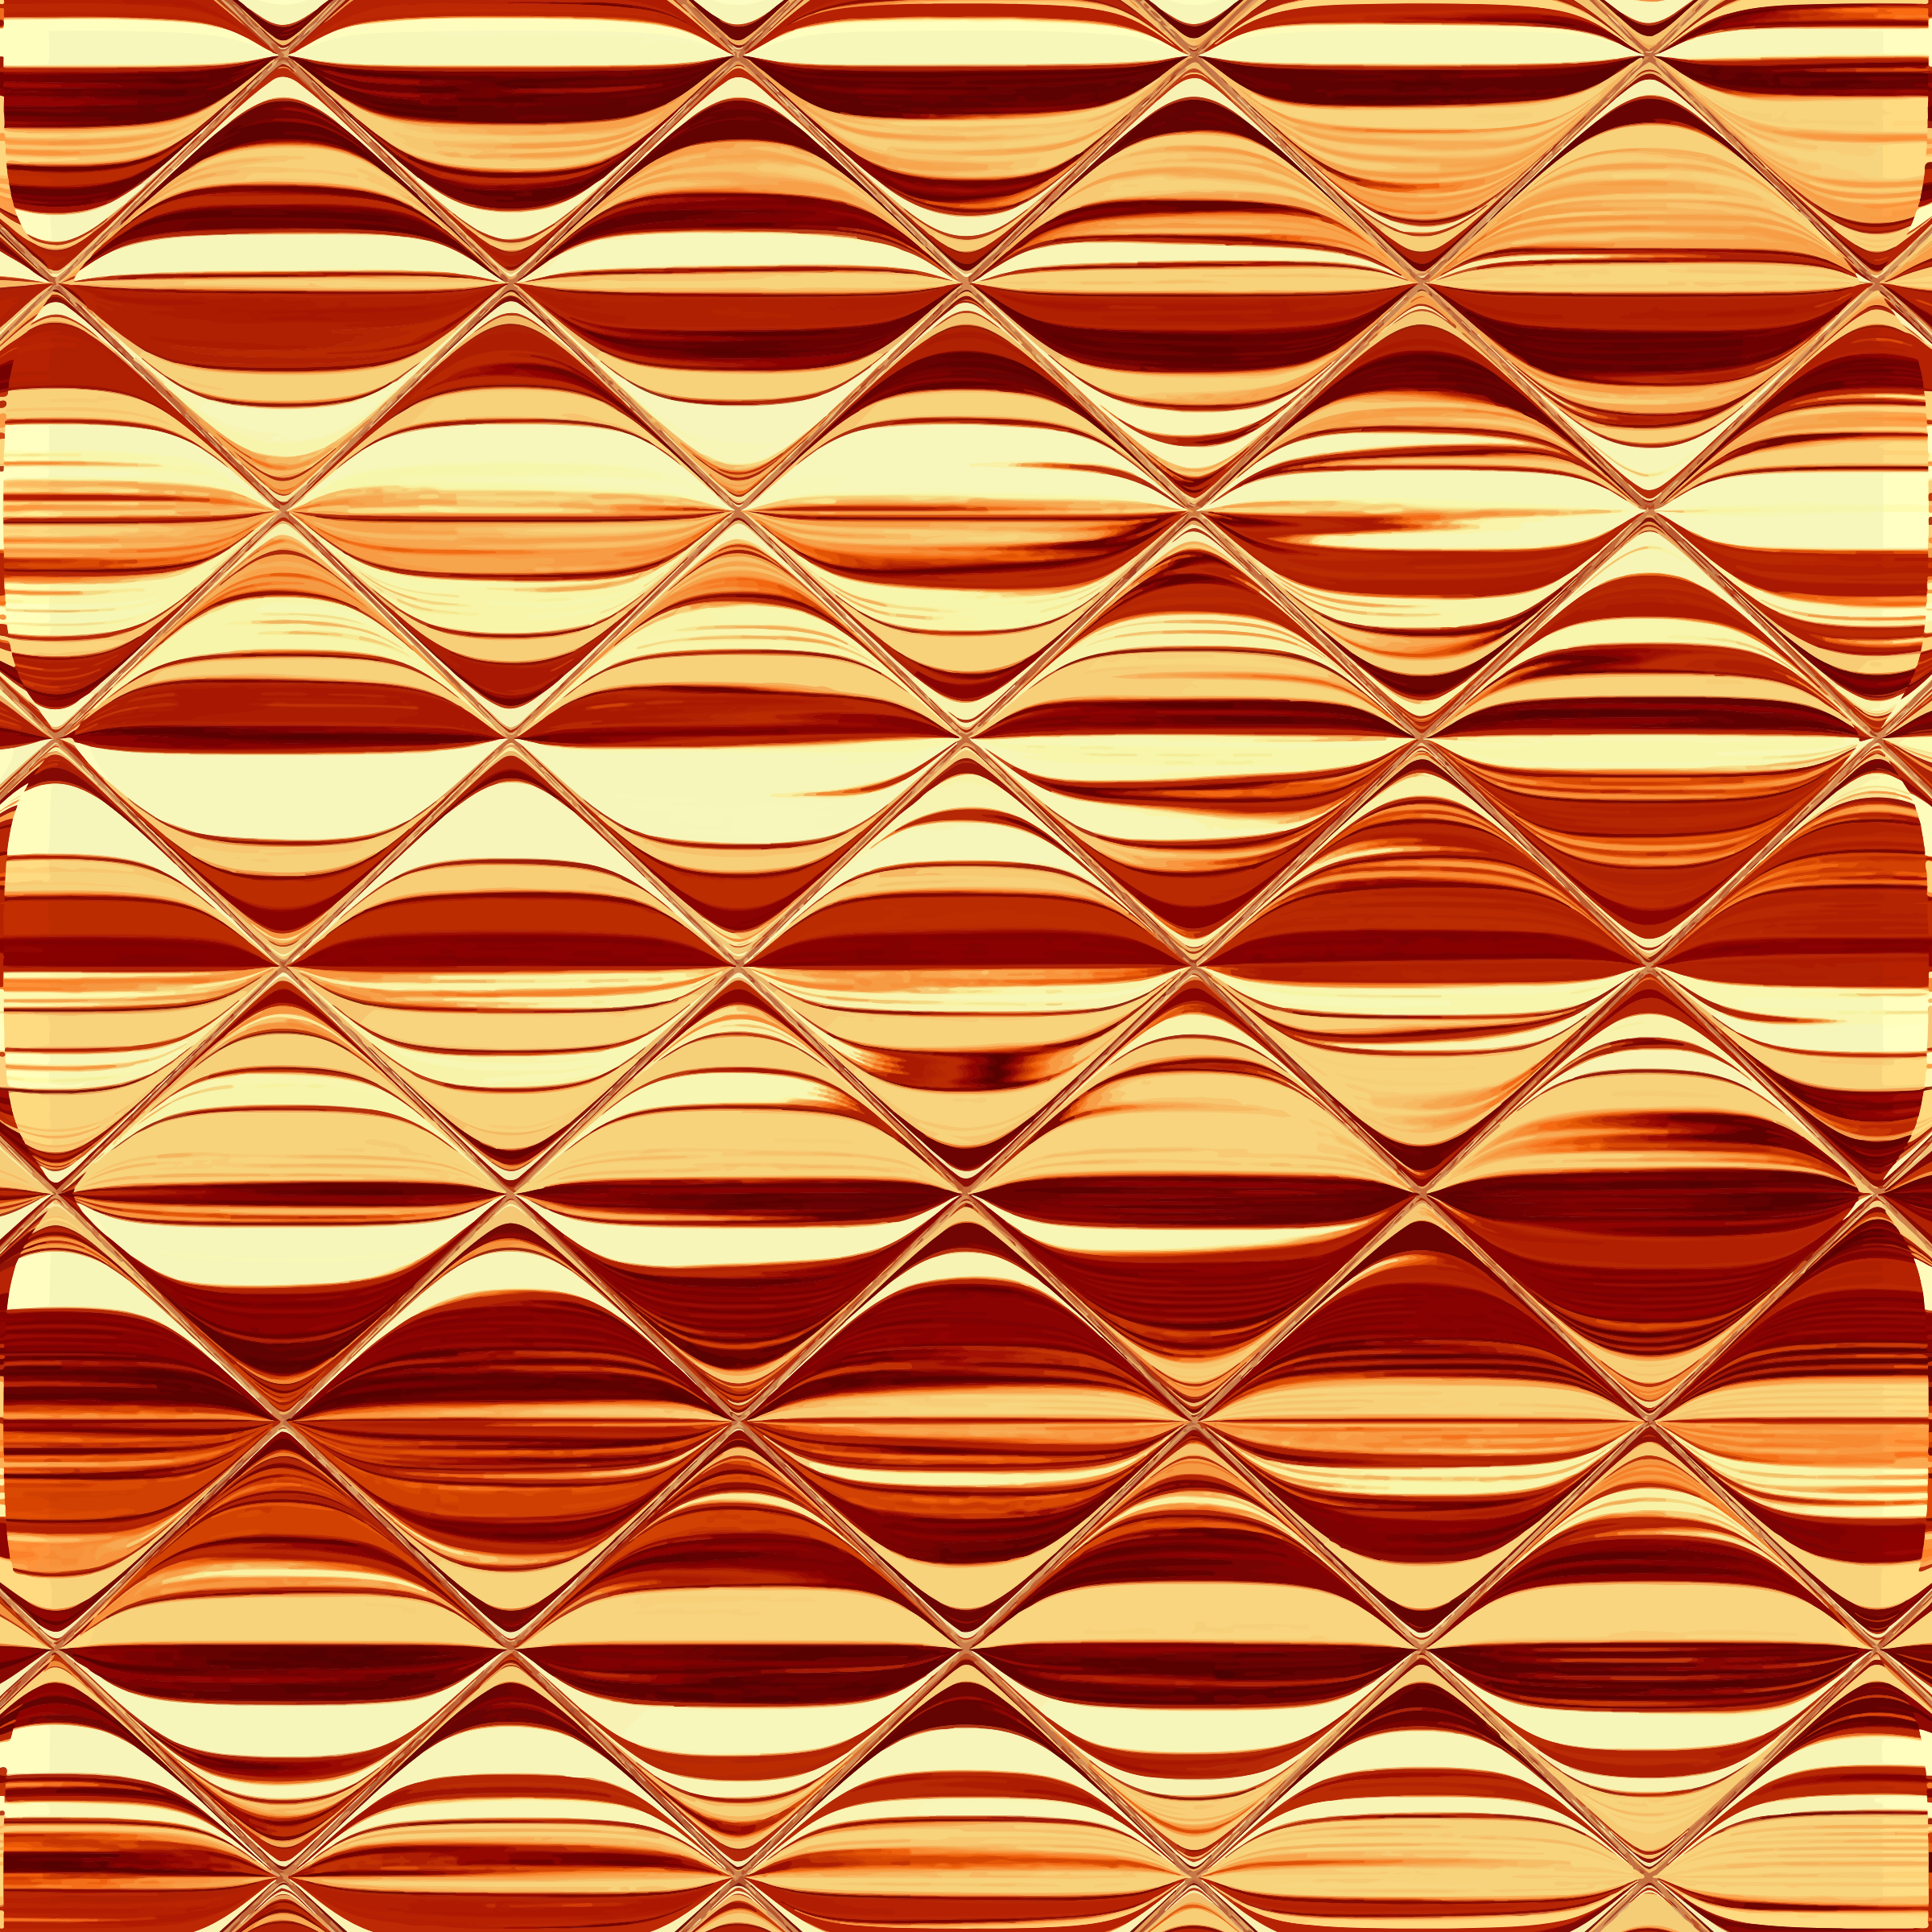 Wavy background 6 (colour 6) by Firkin